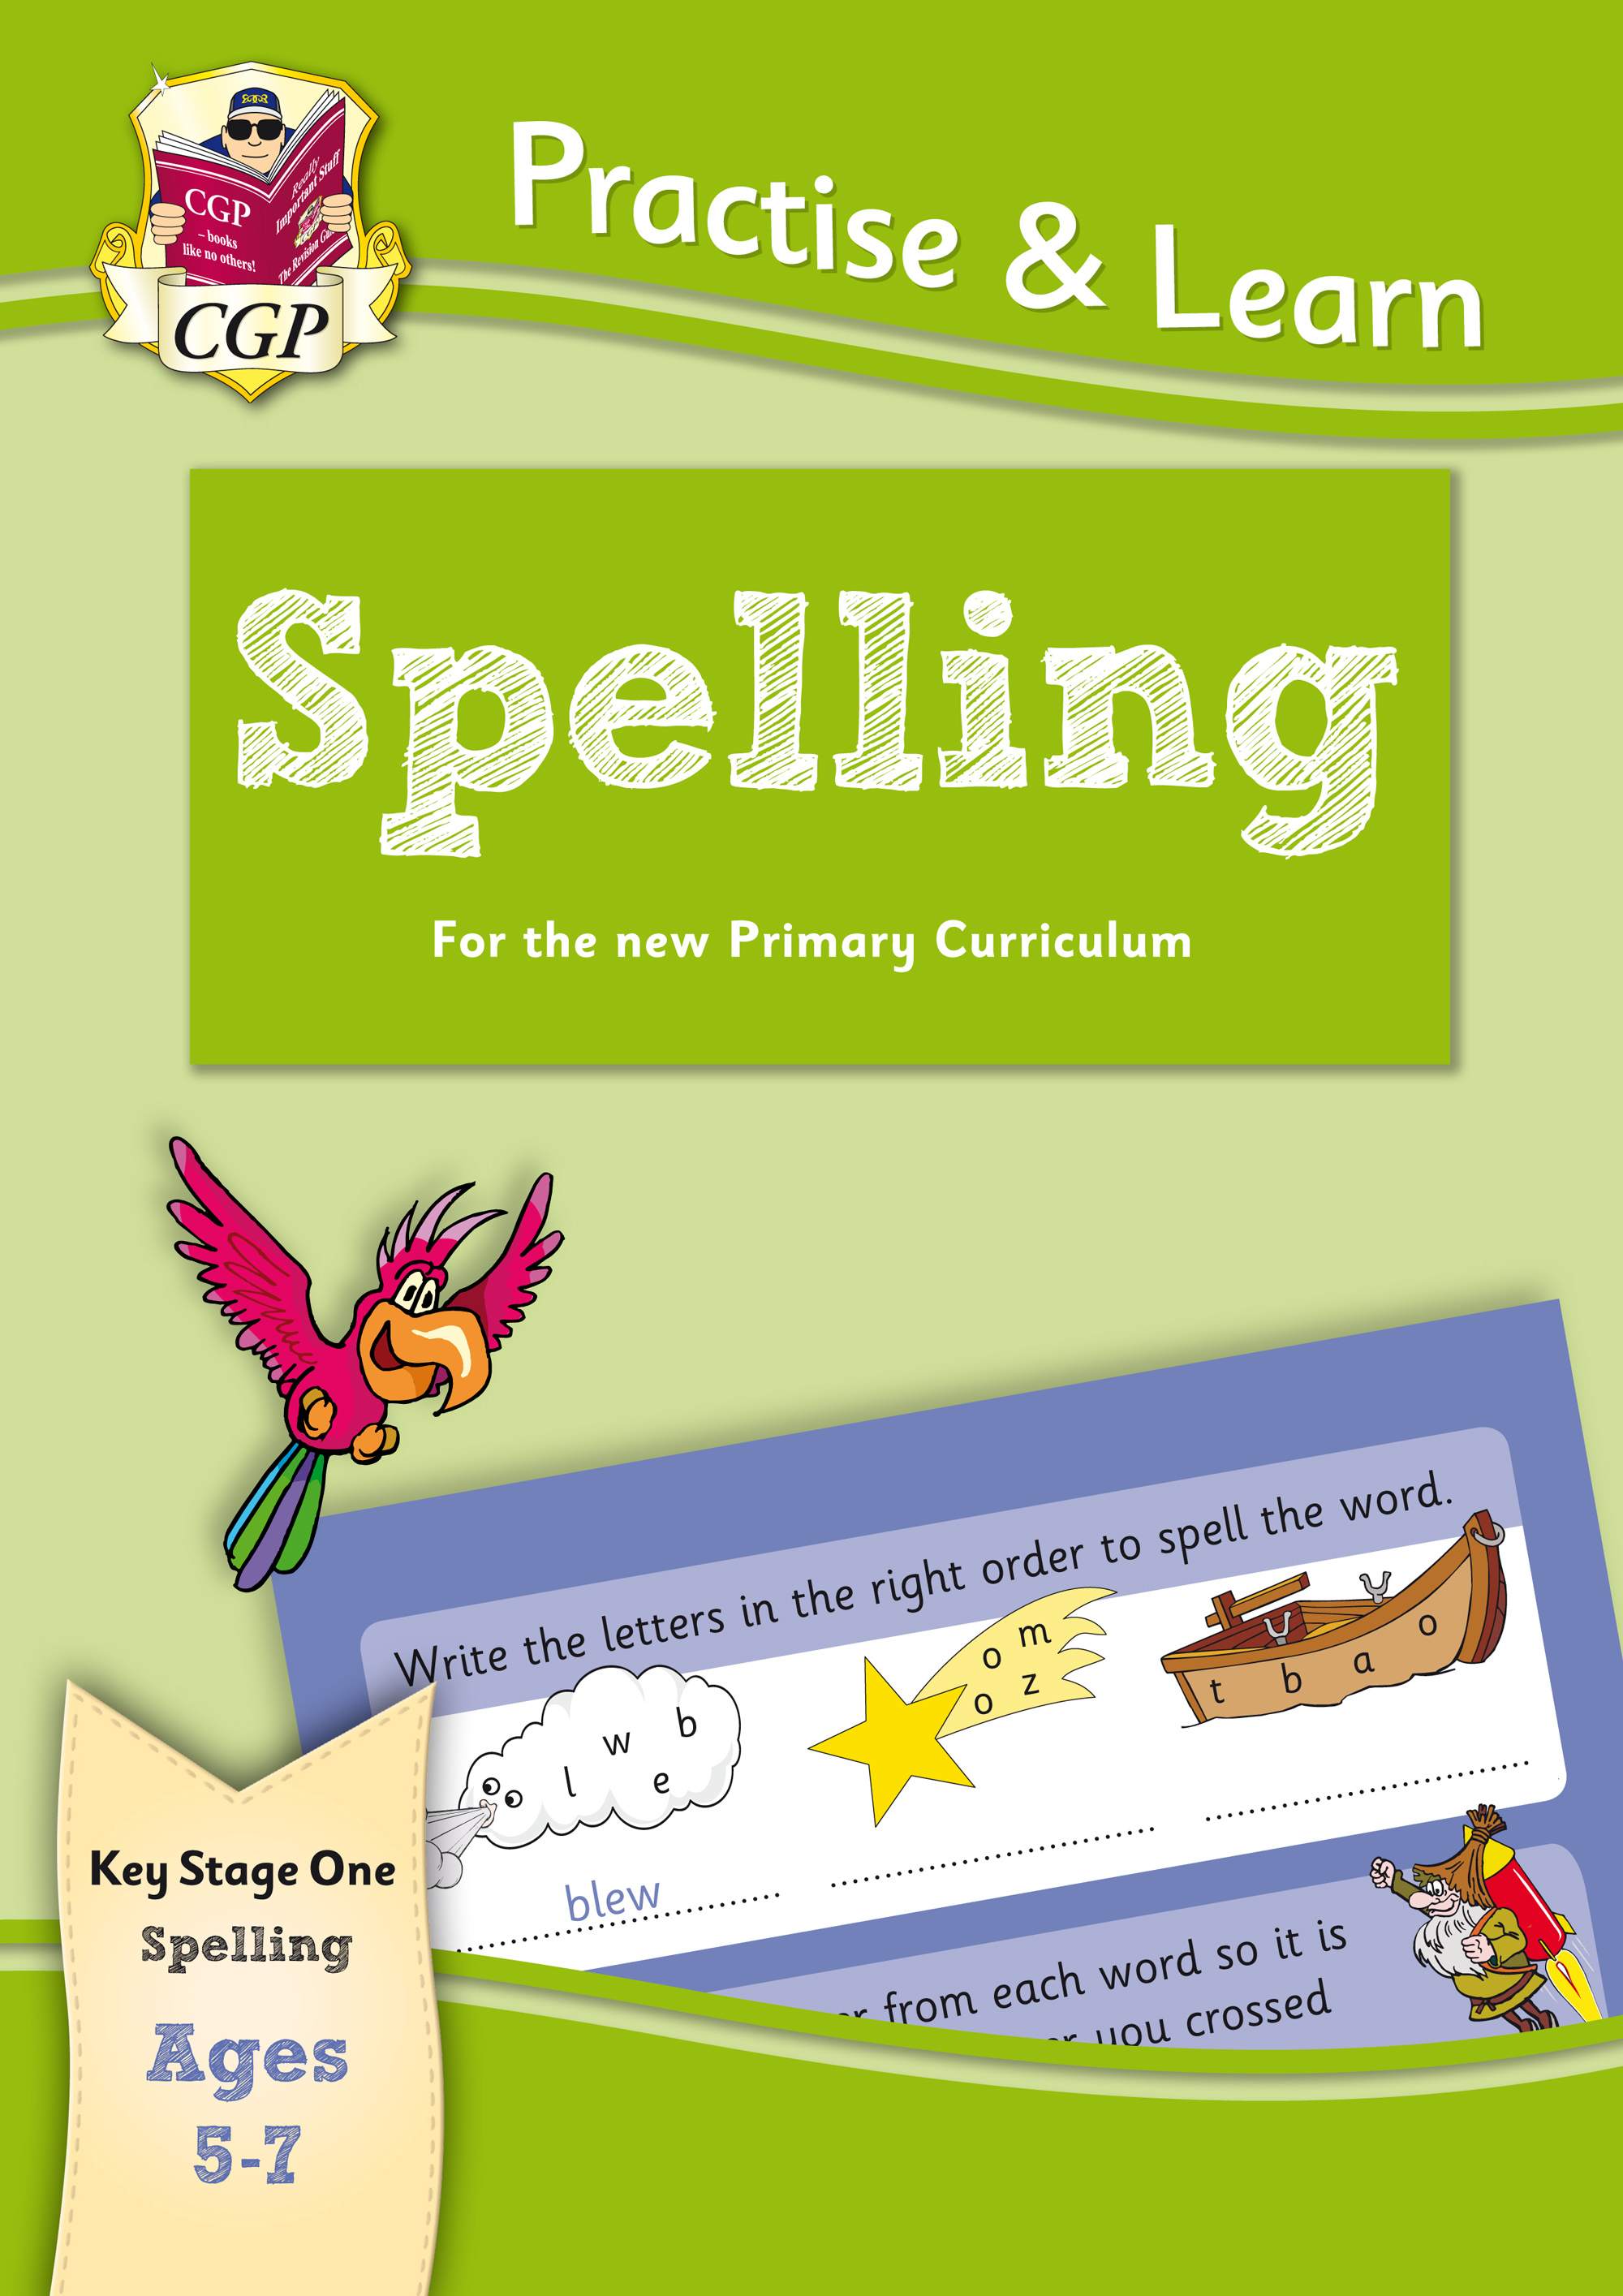 EPS12 - New Curriculum Practise & Learn: Spelling for Ages 5-7